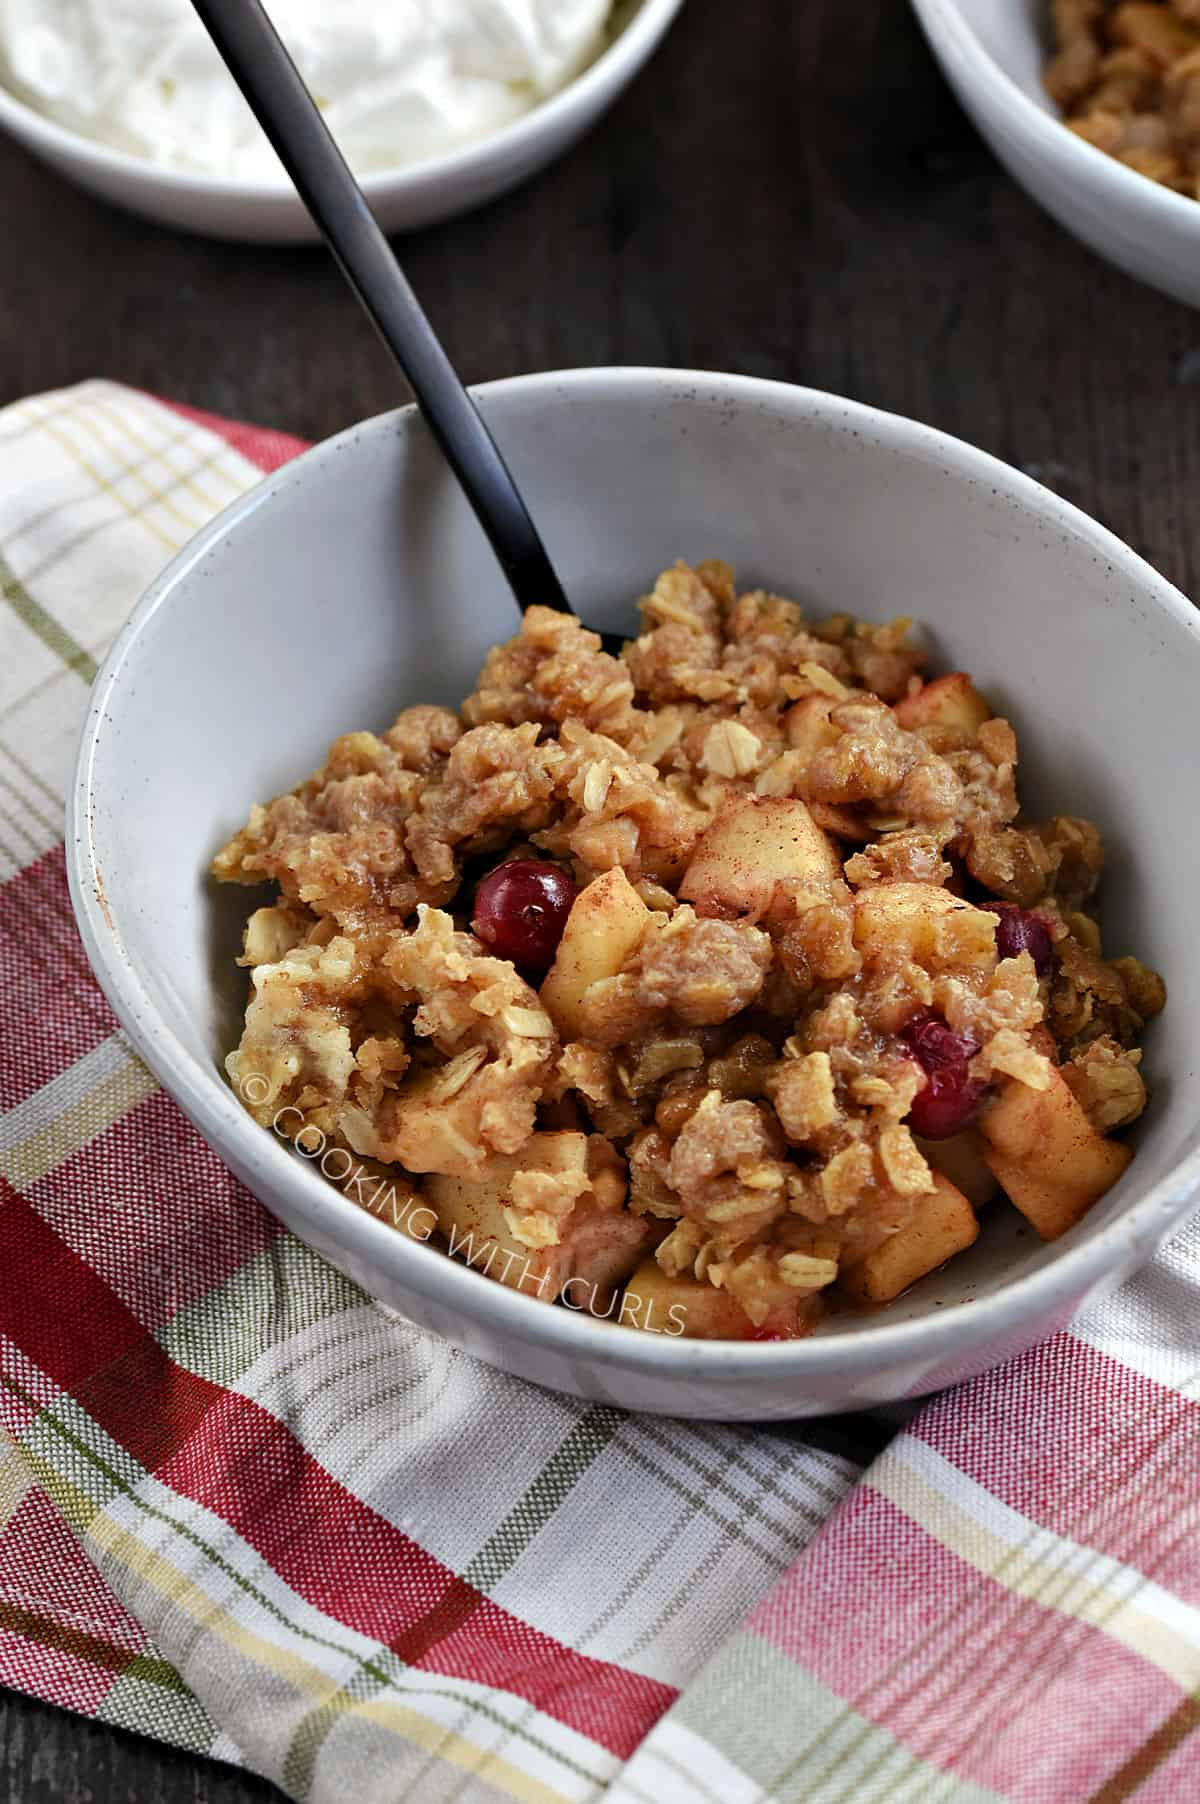 Instant Pot Apple Cranberry Crisp in a small bowl, with a bowl of whipped cream in the background.